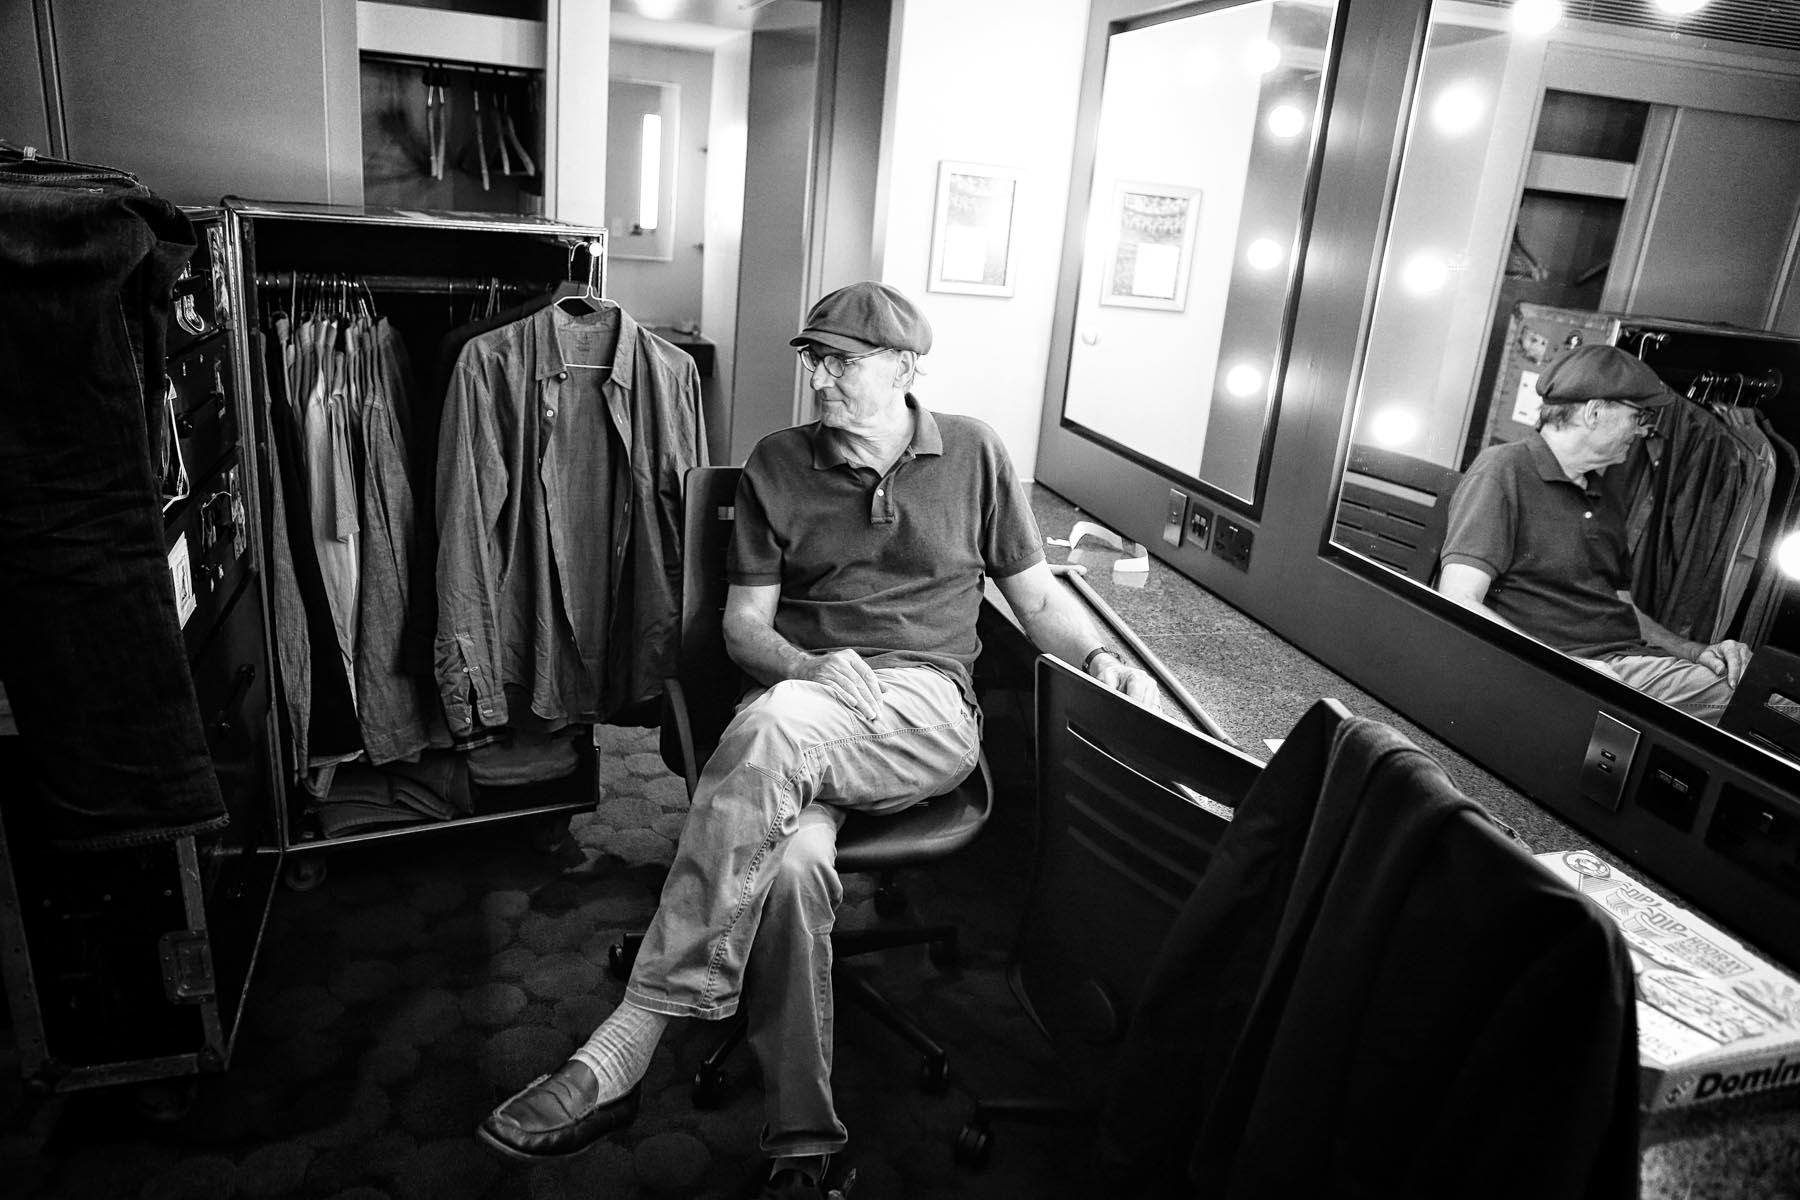 James Taylor backstage at the Royal Albert Hall by Christie Goodwin